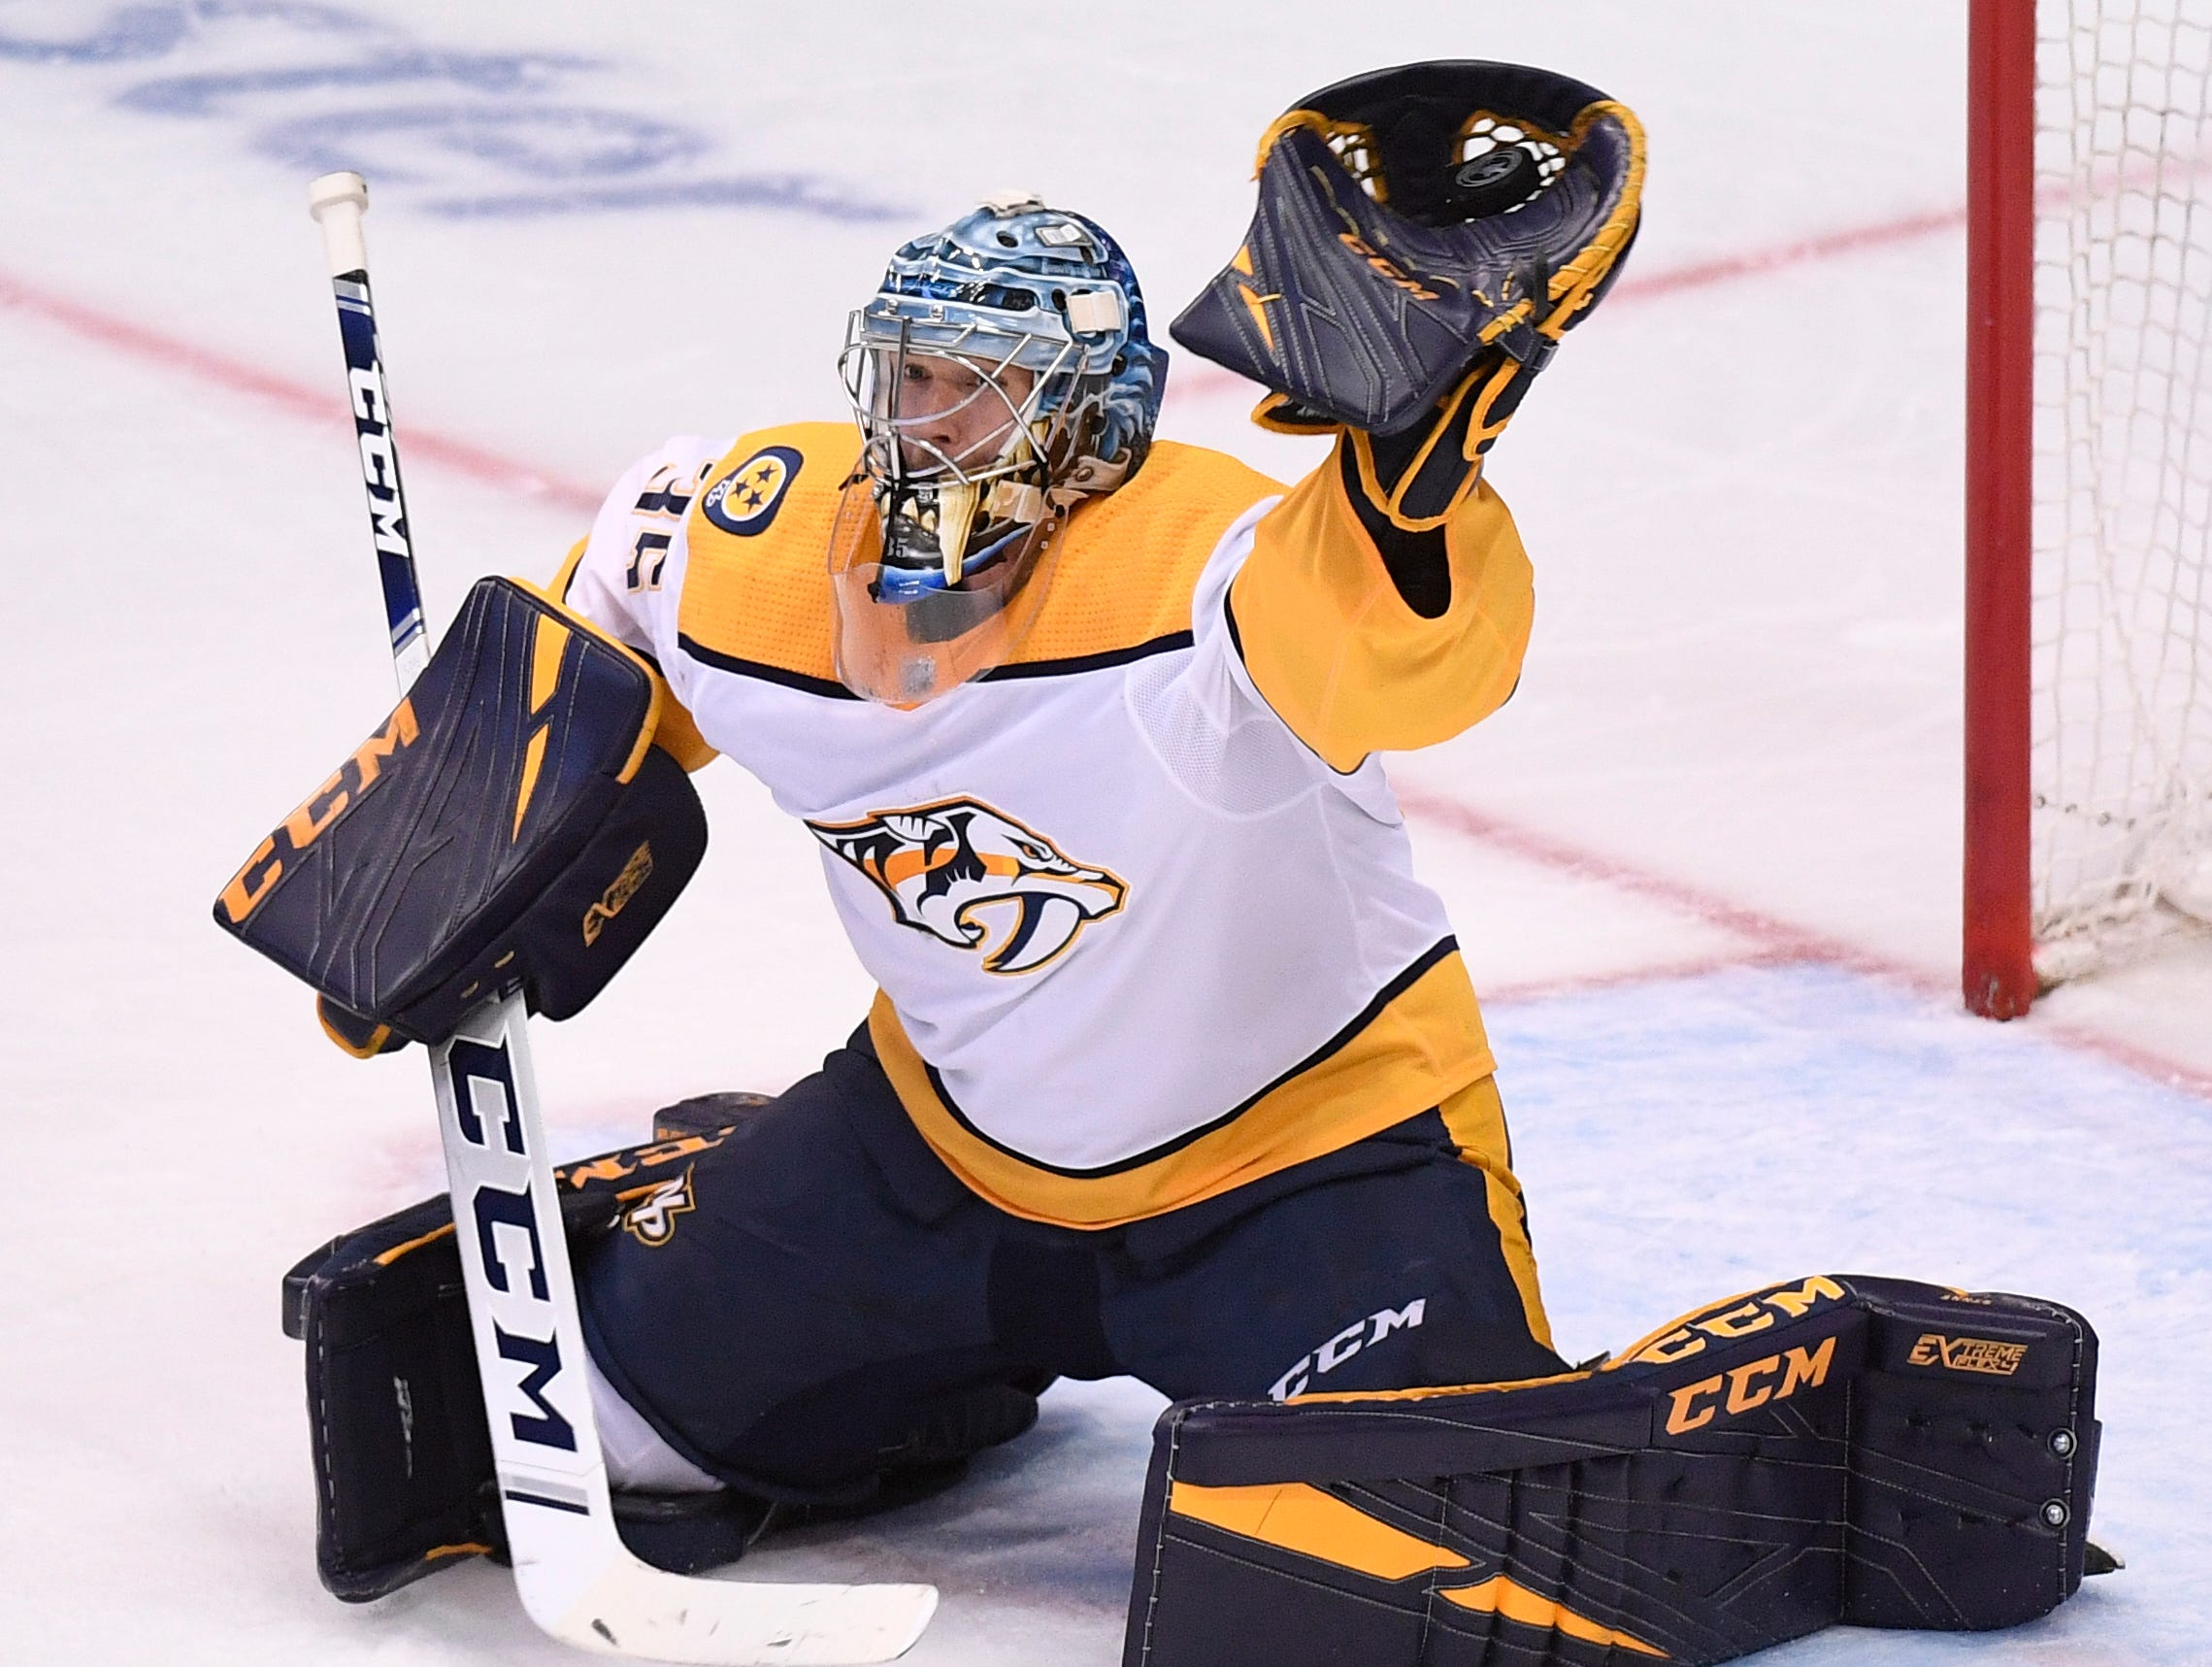 Nashville Predators goaltender Pekka Rinne (35) makes a save against the Dallas Stars during the second period of the divisional semifinal game at the American Airlines Center in Dallas, Texas, Monday, April 22, 2019.